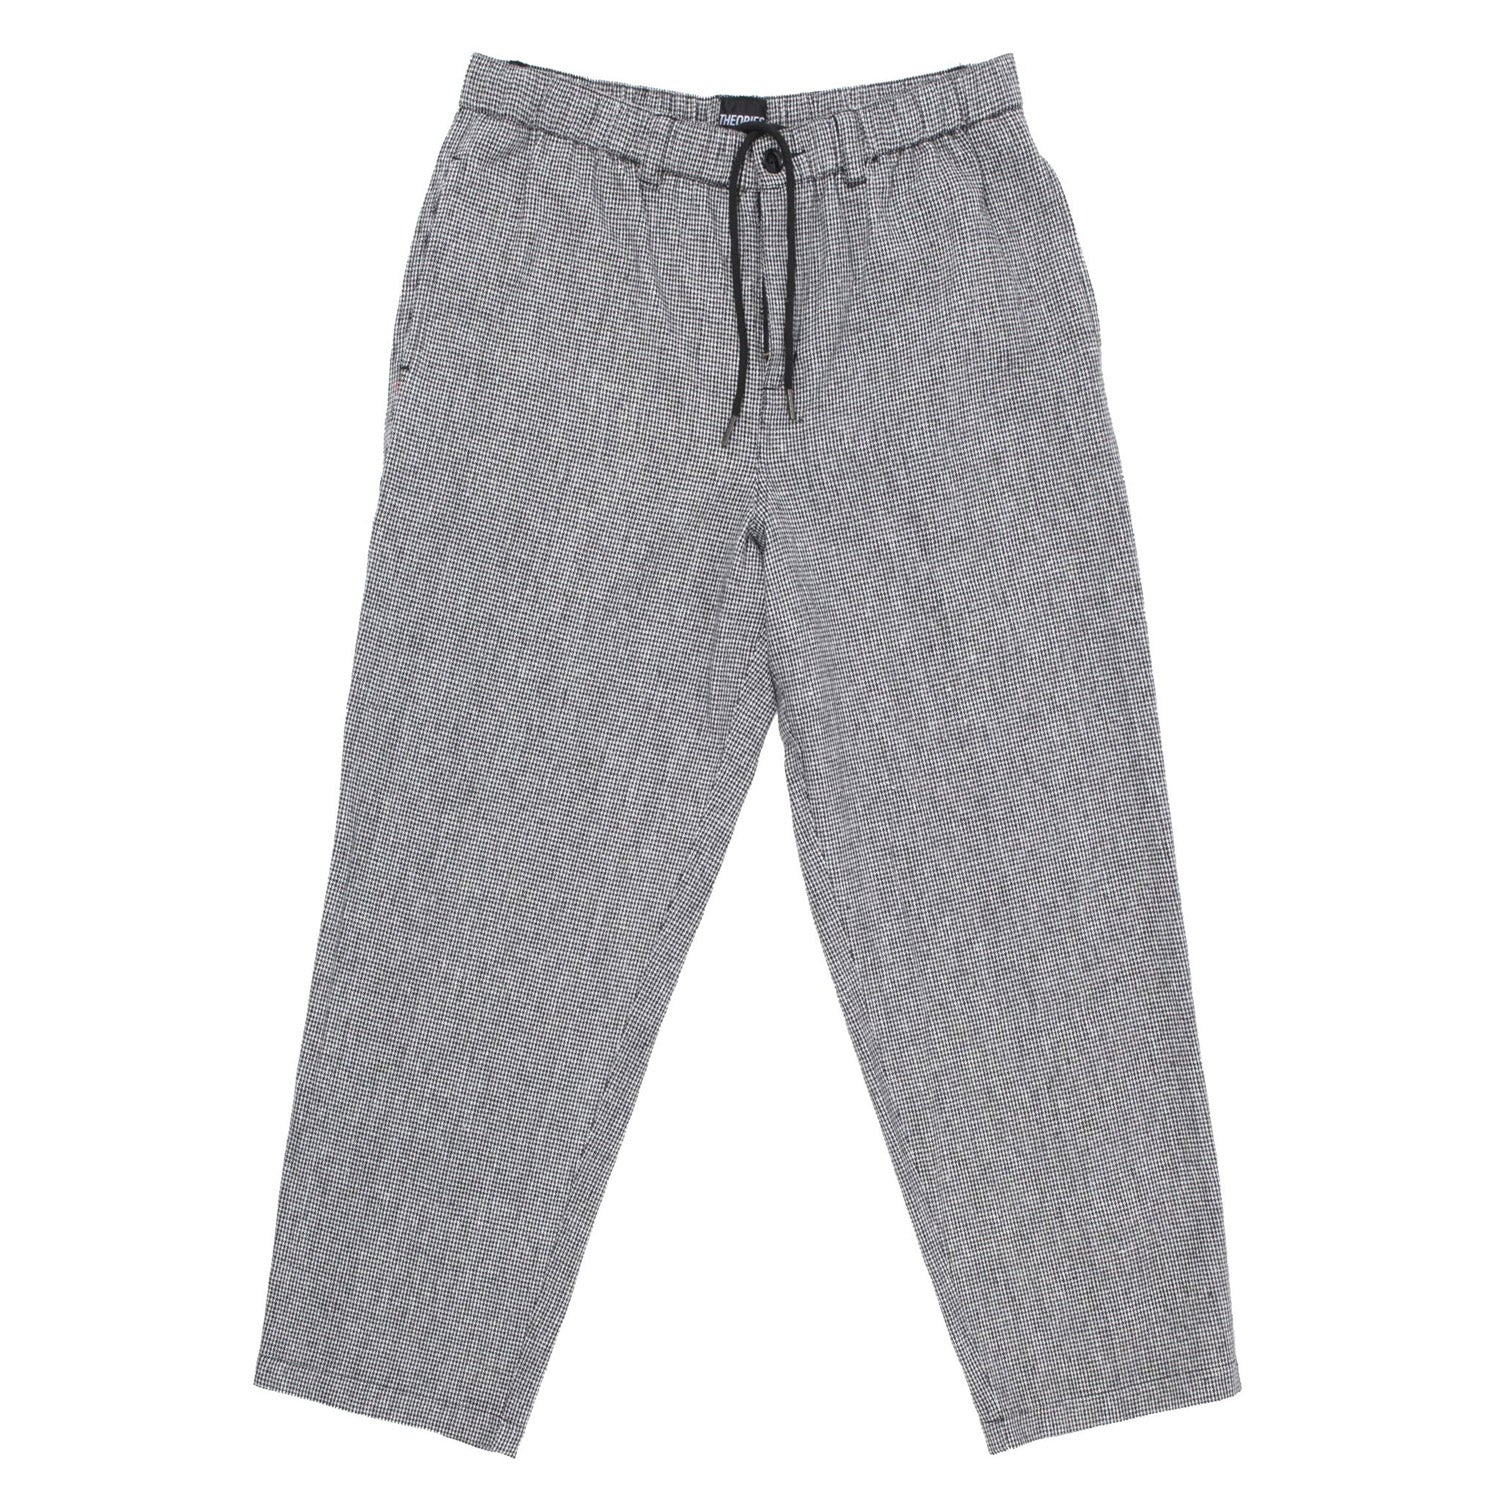 Theories Stamp Lounge Pant Houndstooth